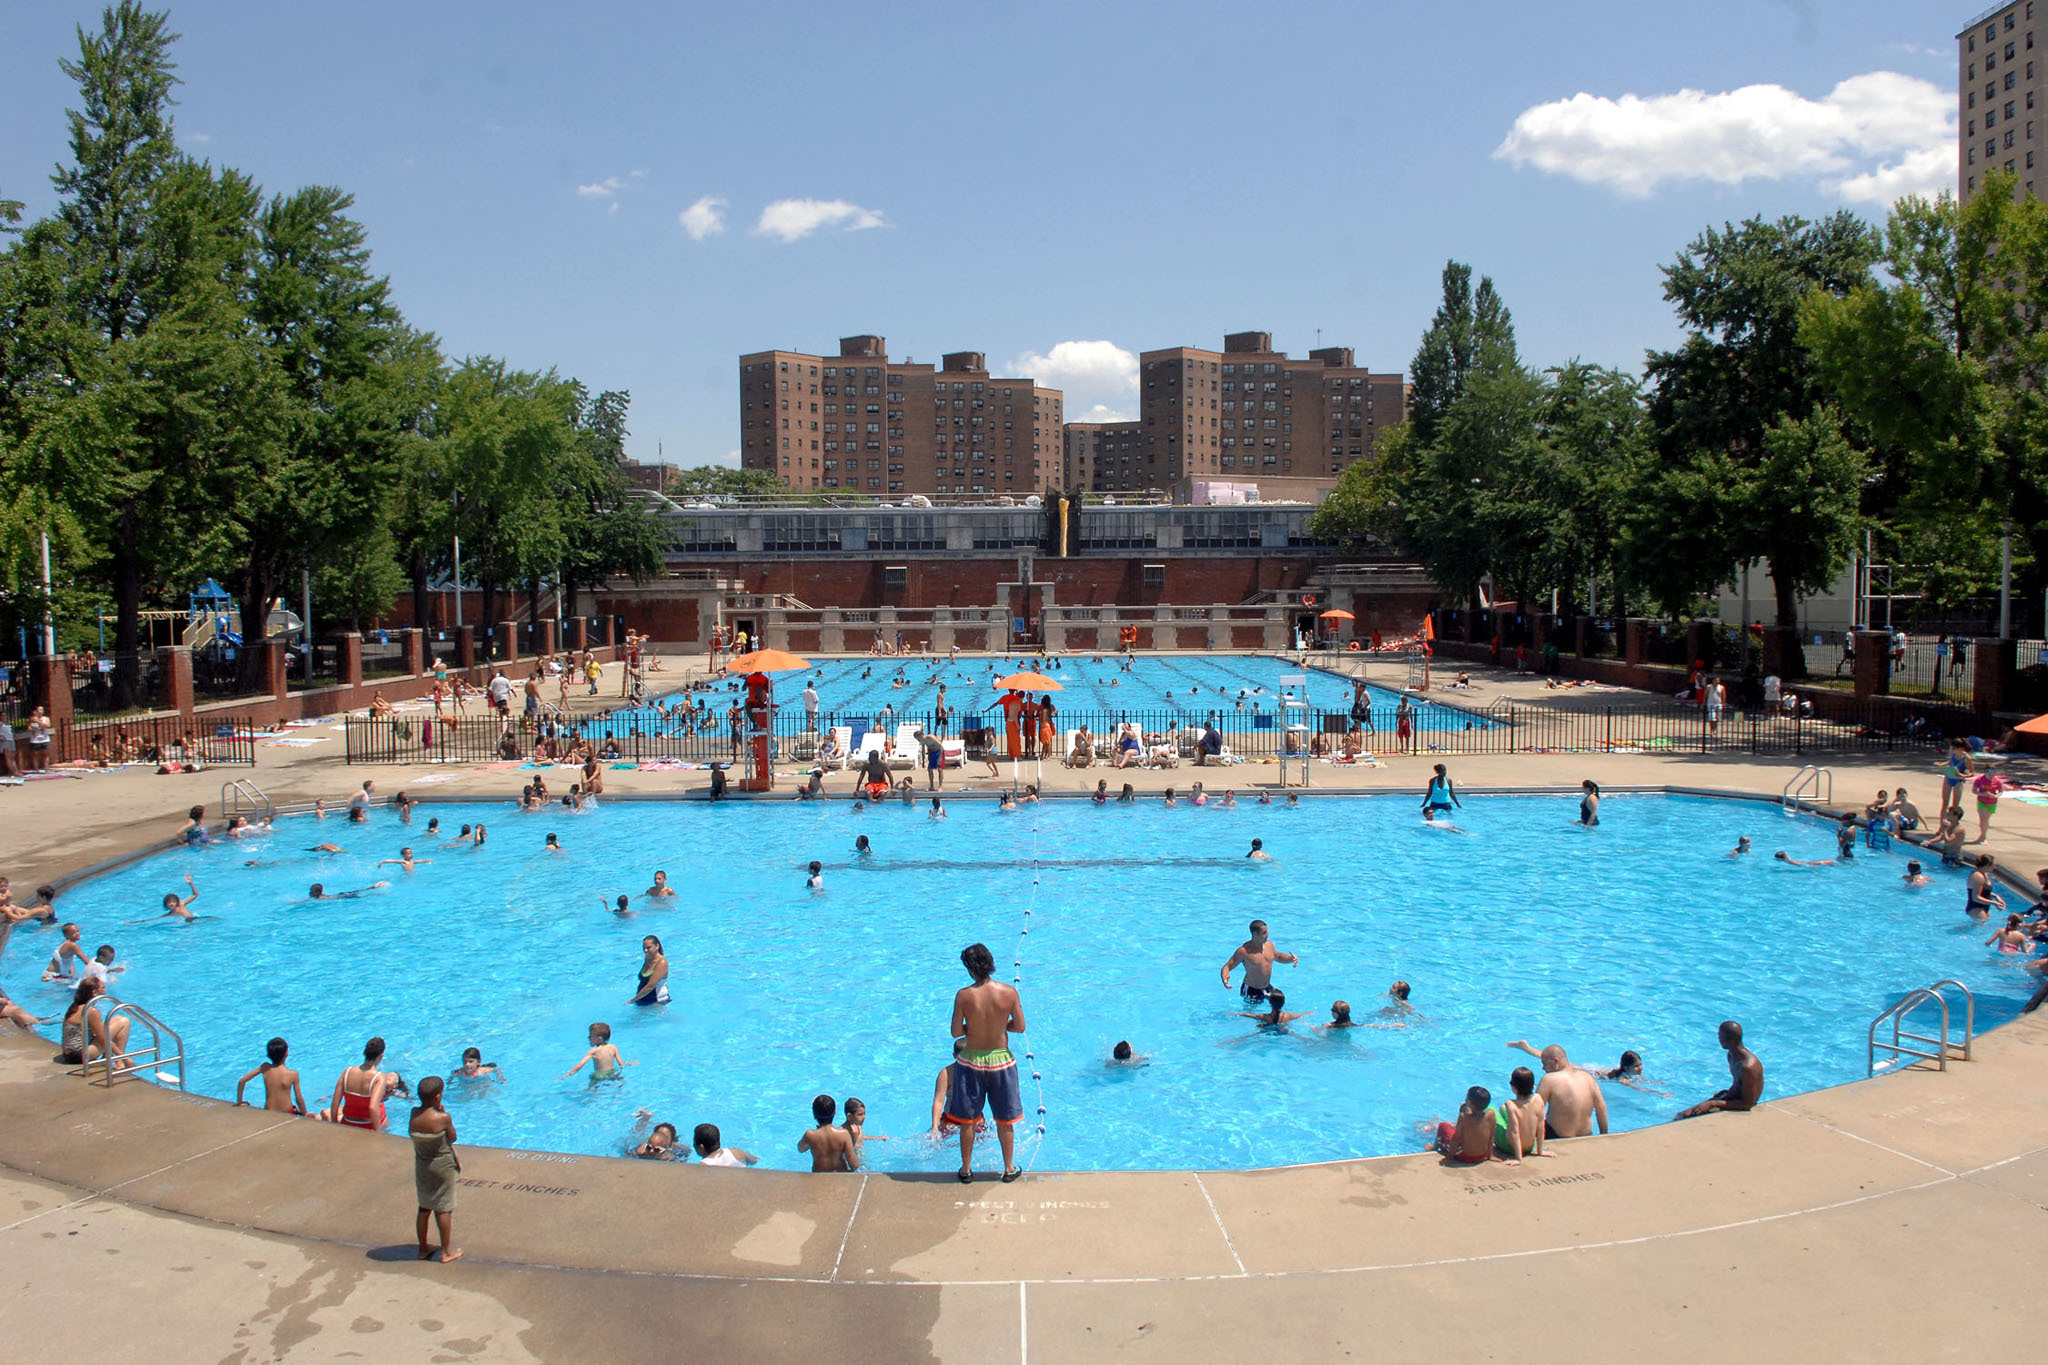 Best public swimming pools to cool off this summer in nyc Where can i buy a swimming pool near me